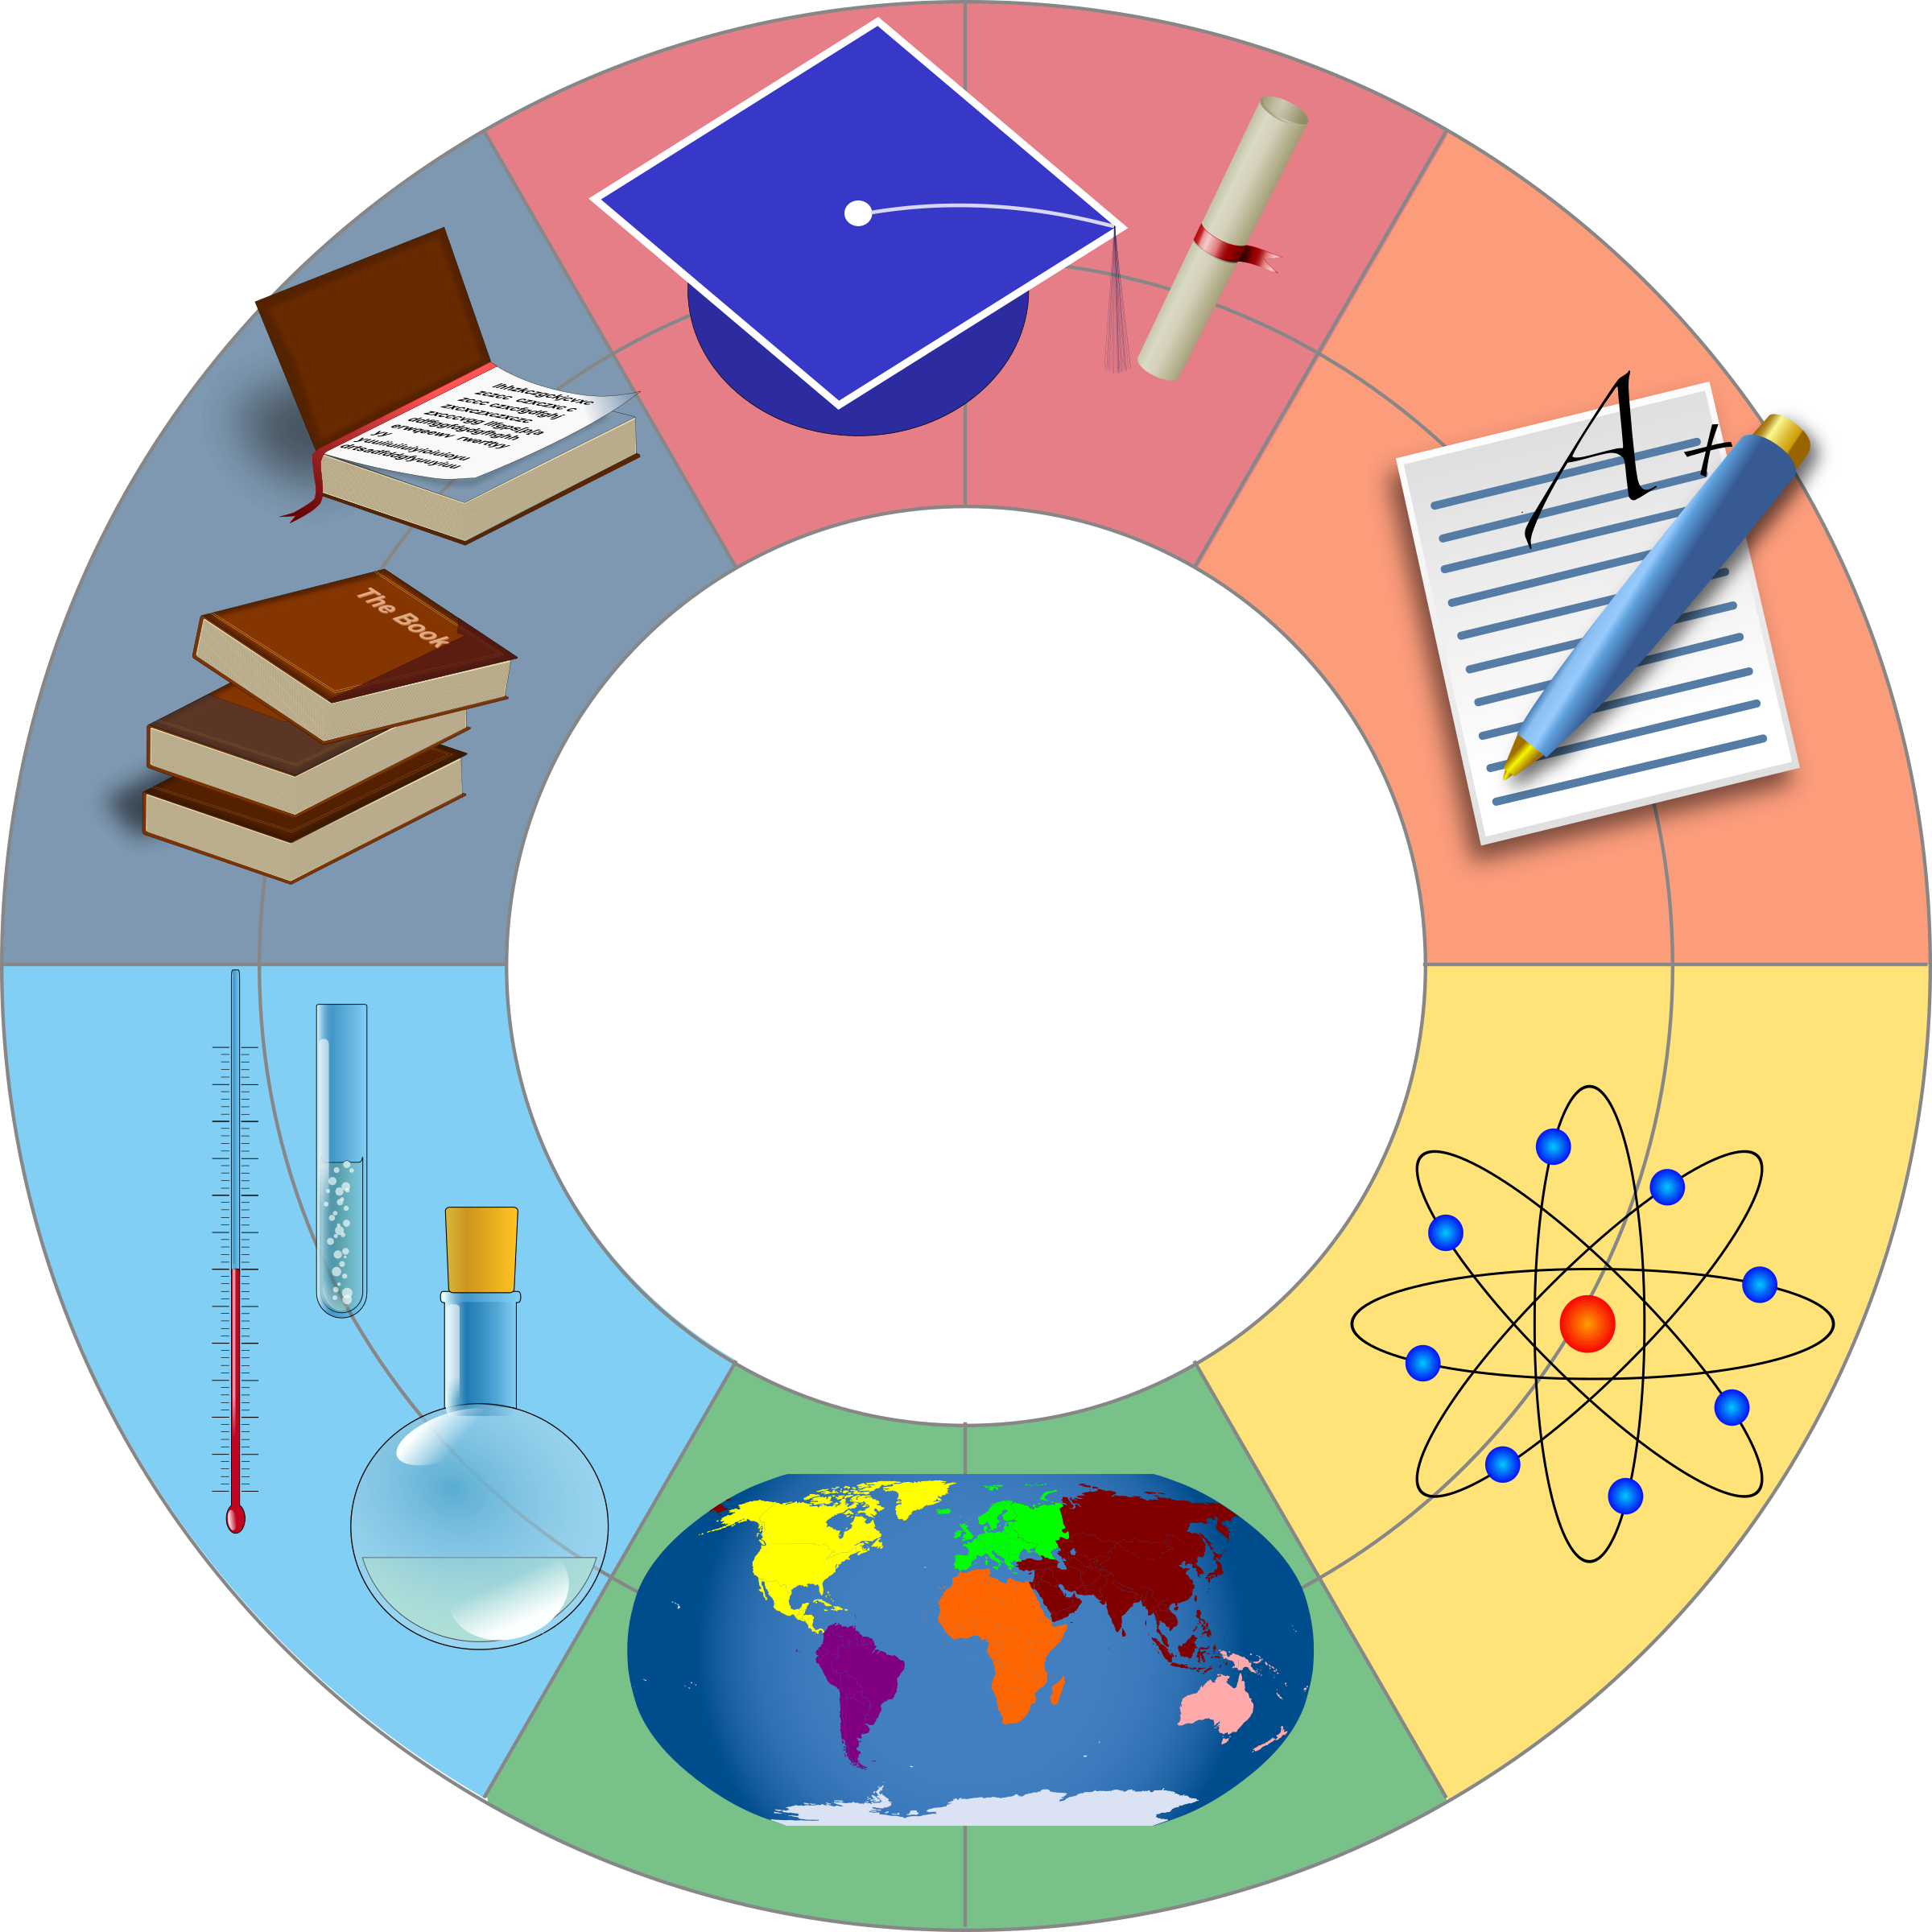 Education wheel by Woofer